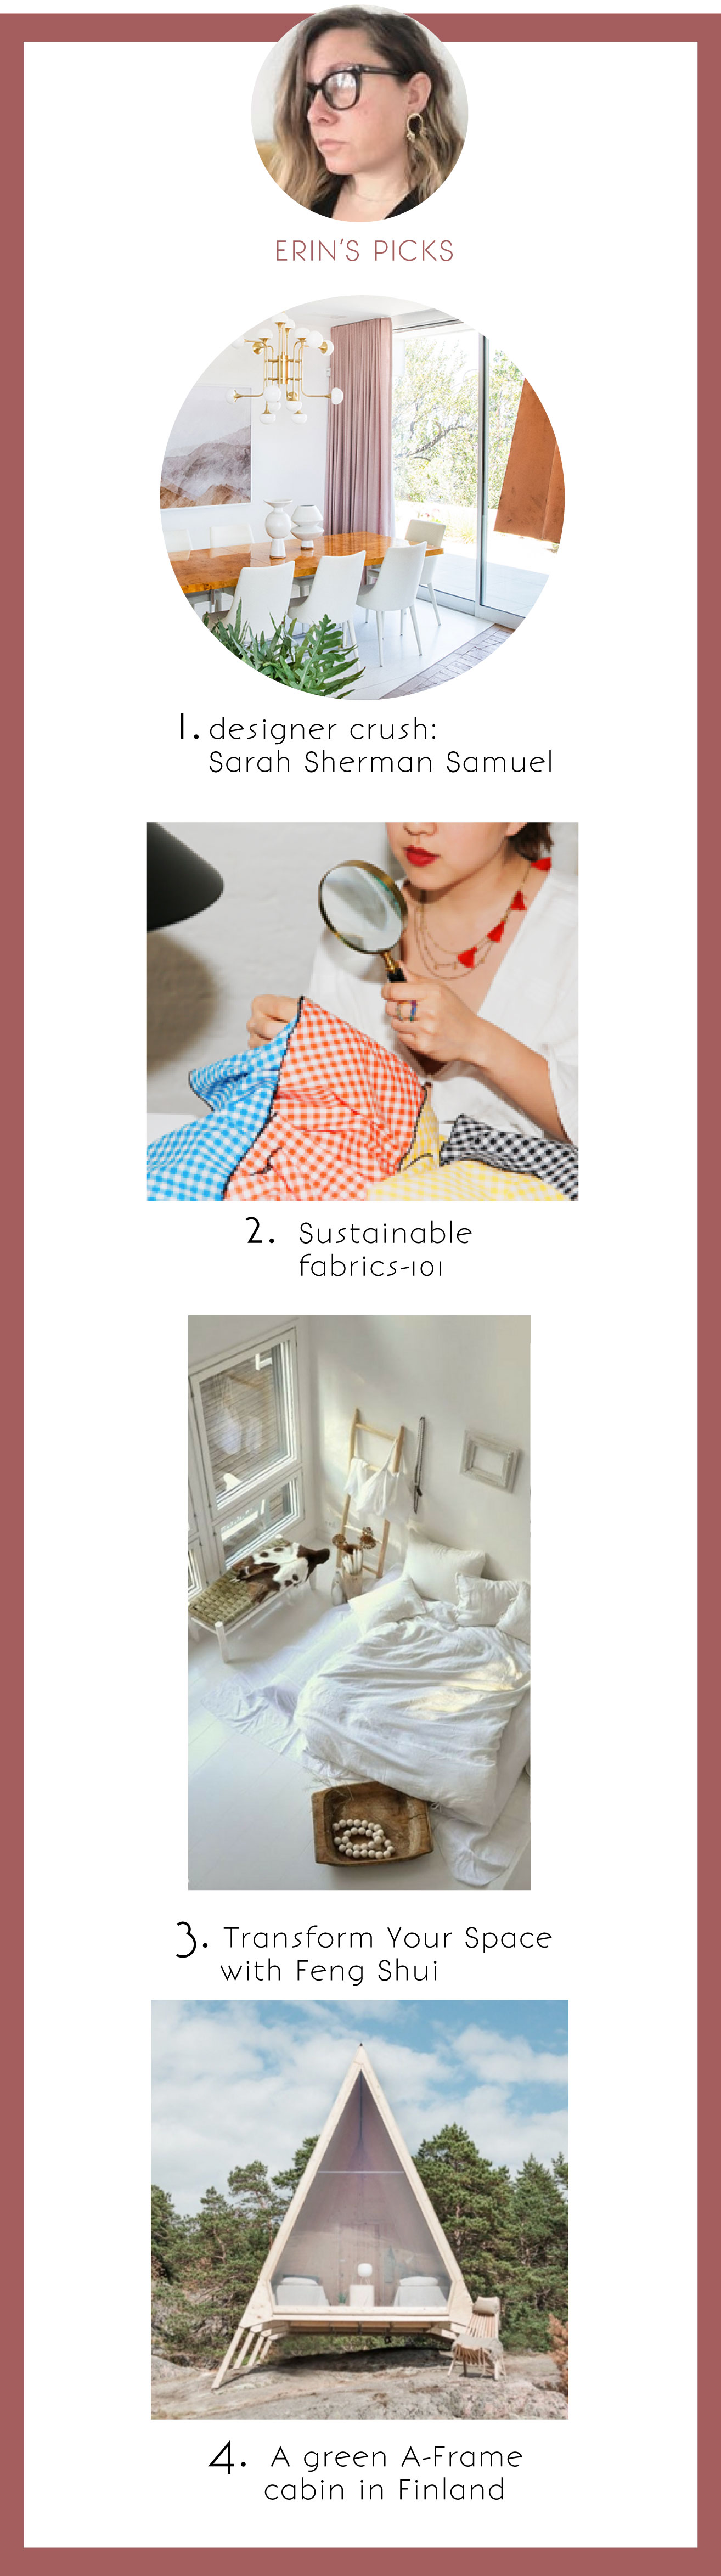 1. Design Crush: Sarah Sherman Samuel  2. S  ustainable Fabrics-101  3. T  ransform Your Space with Feng Shui  4. A Green A-Frame Cabin in Finland